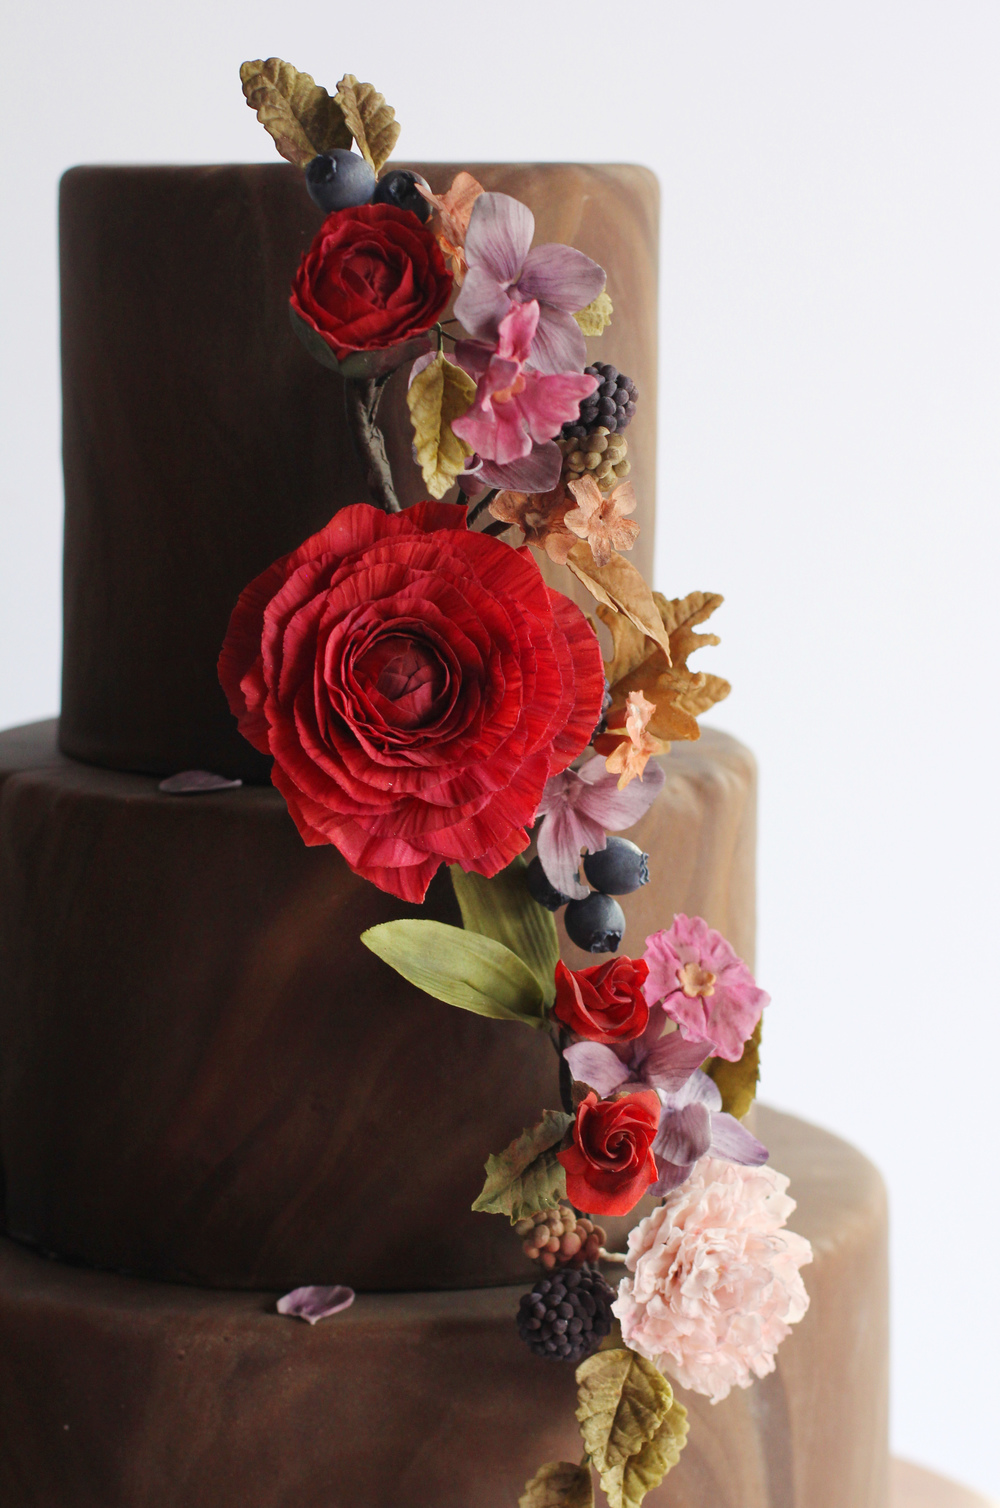 2015. A work for my client @ Winifred Kriste Cake. More on Portfolio Tab.